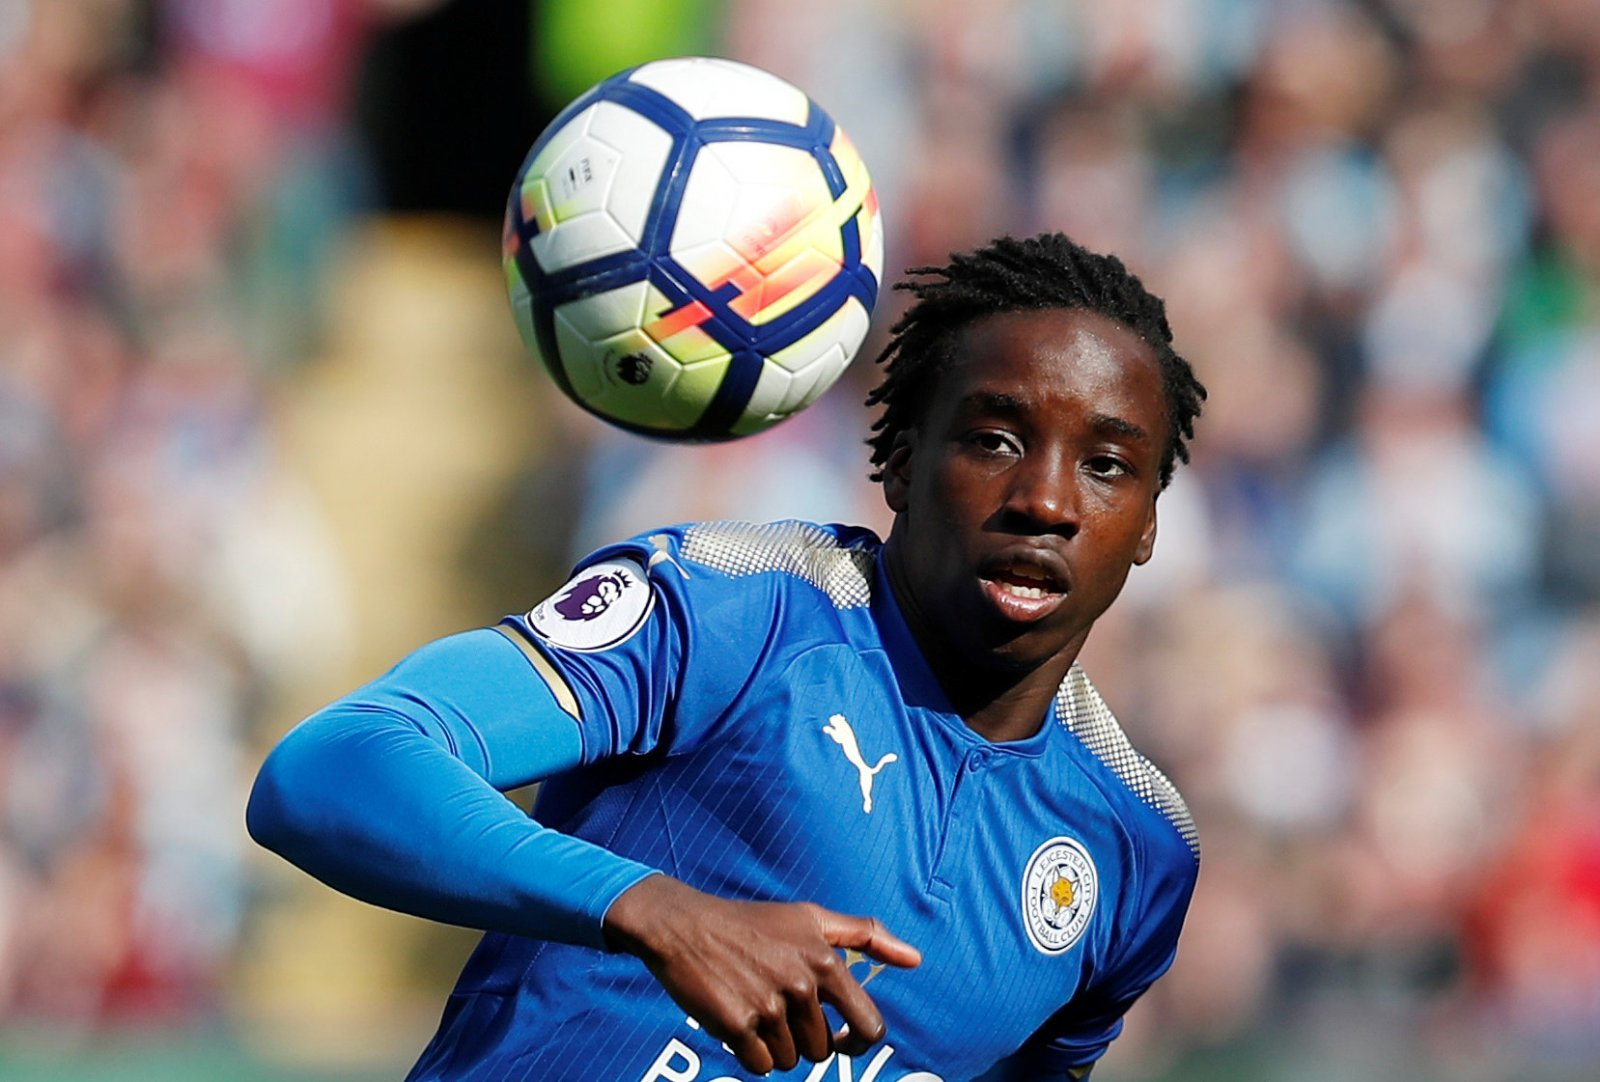 Leicester City: Fousseni Diabate's loan move doesn't include option to buy